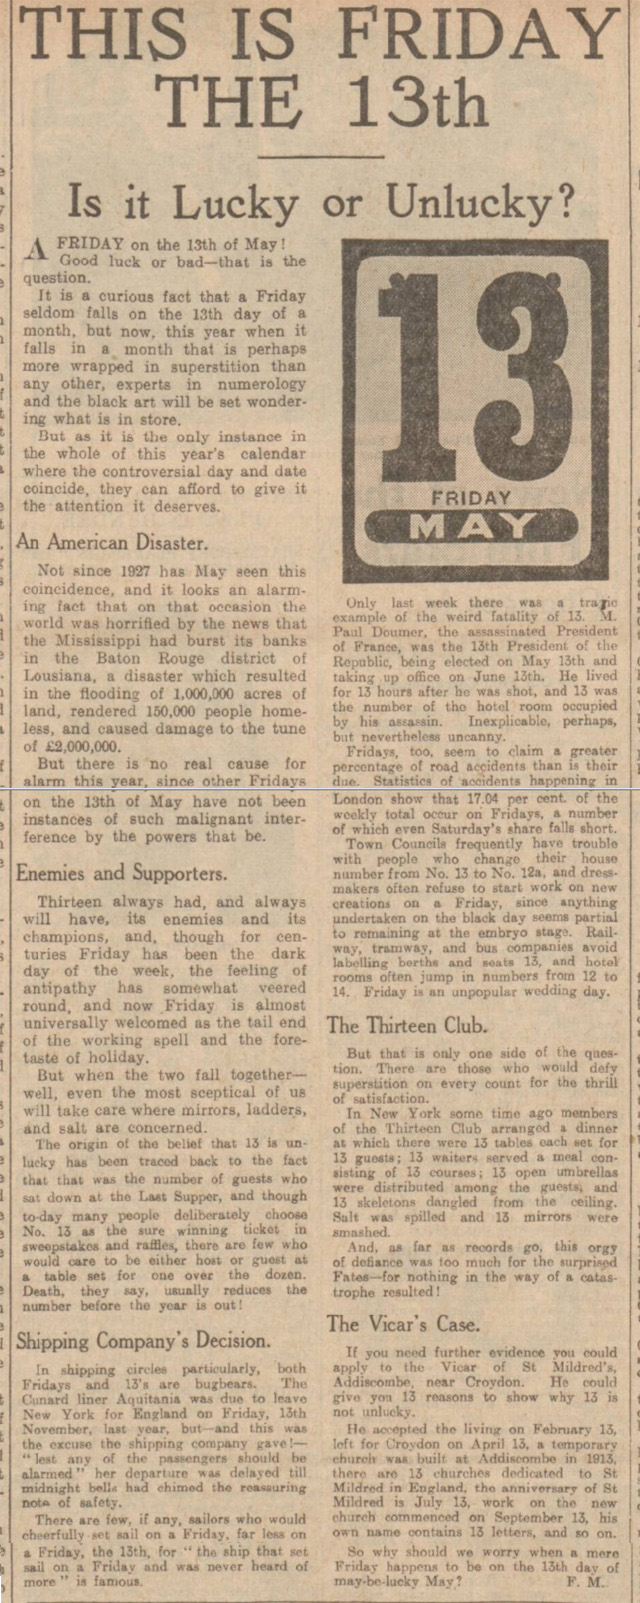 historical newspaper report on friday the 13th